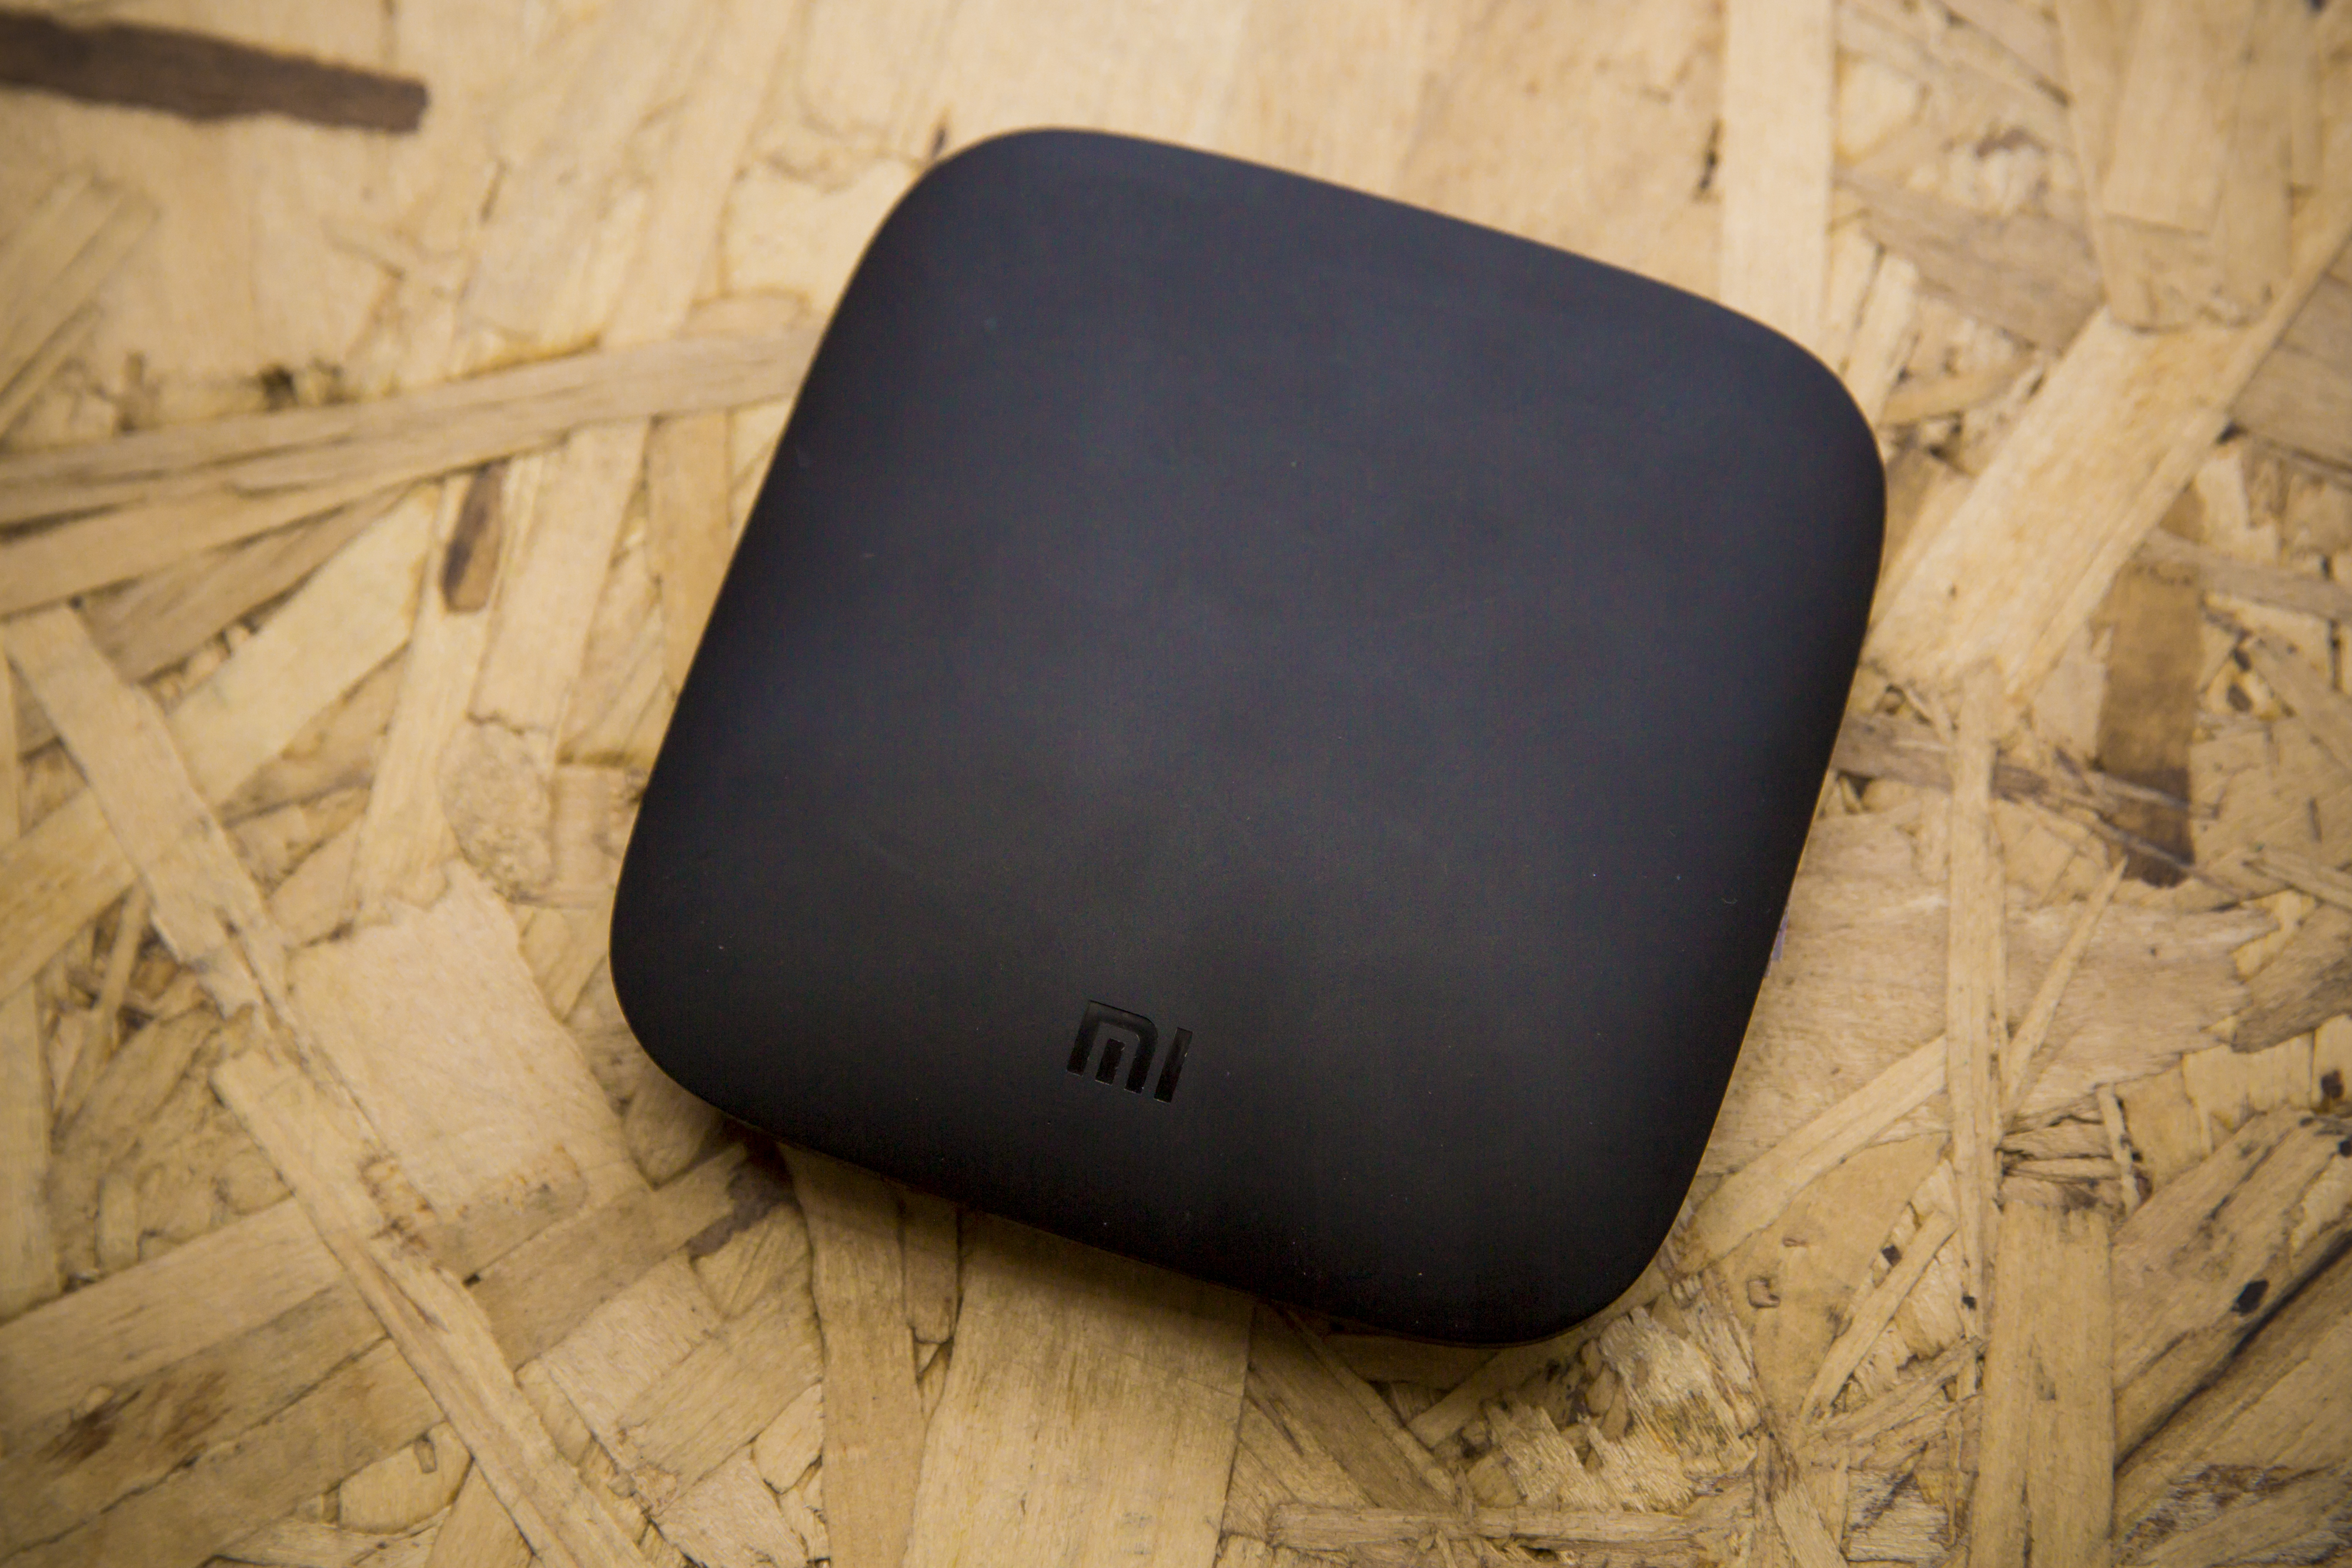 google-io-2016-xiaomi-mi-set-top-android-tv-box-8627.jpg